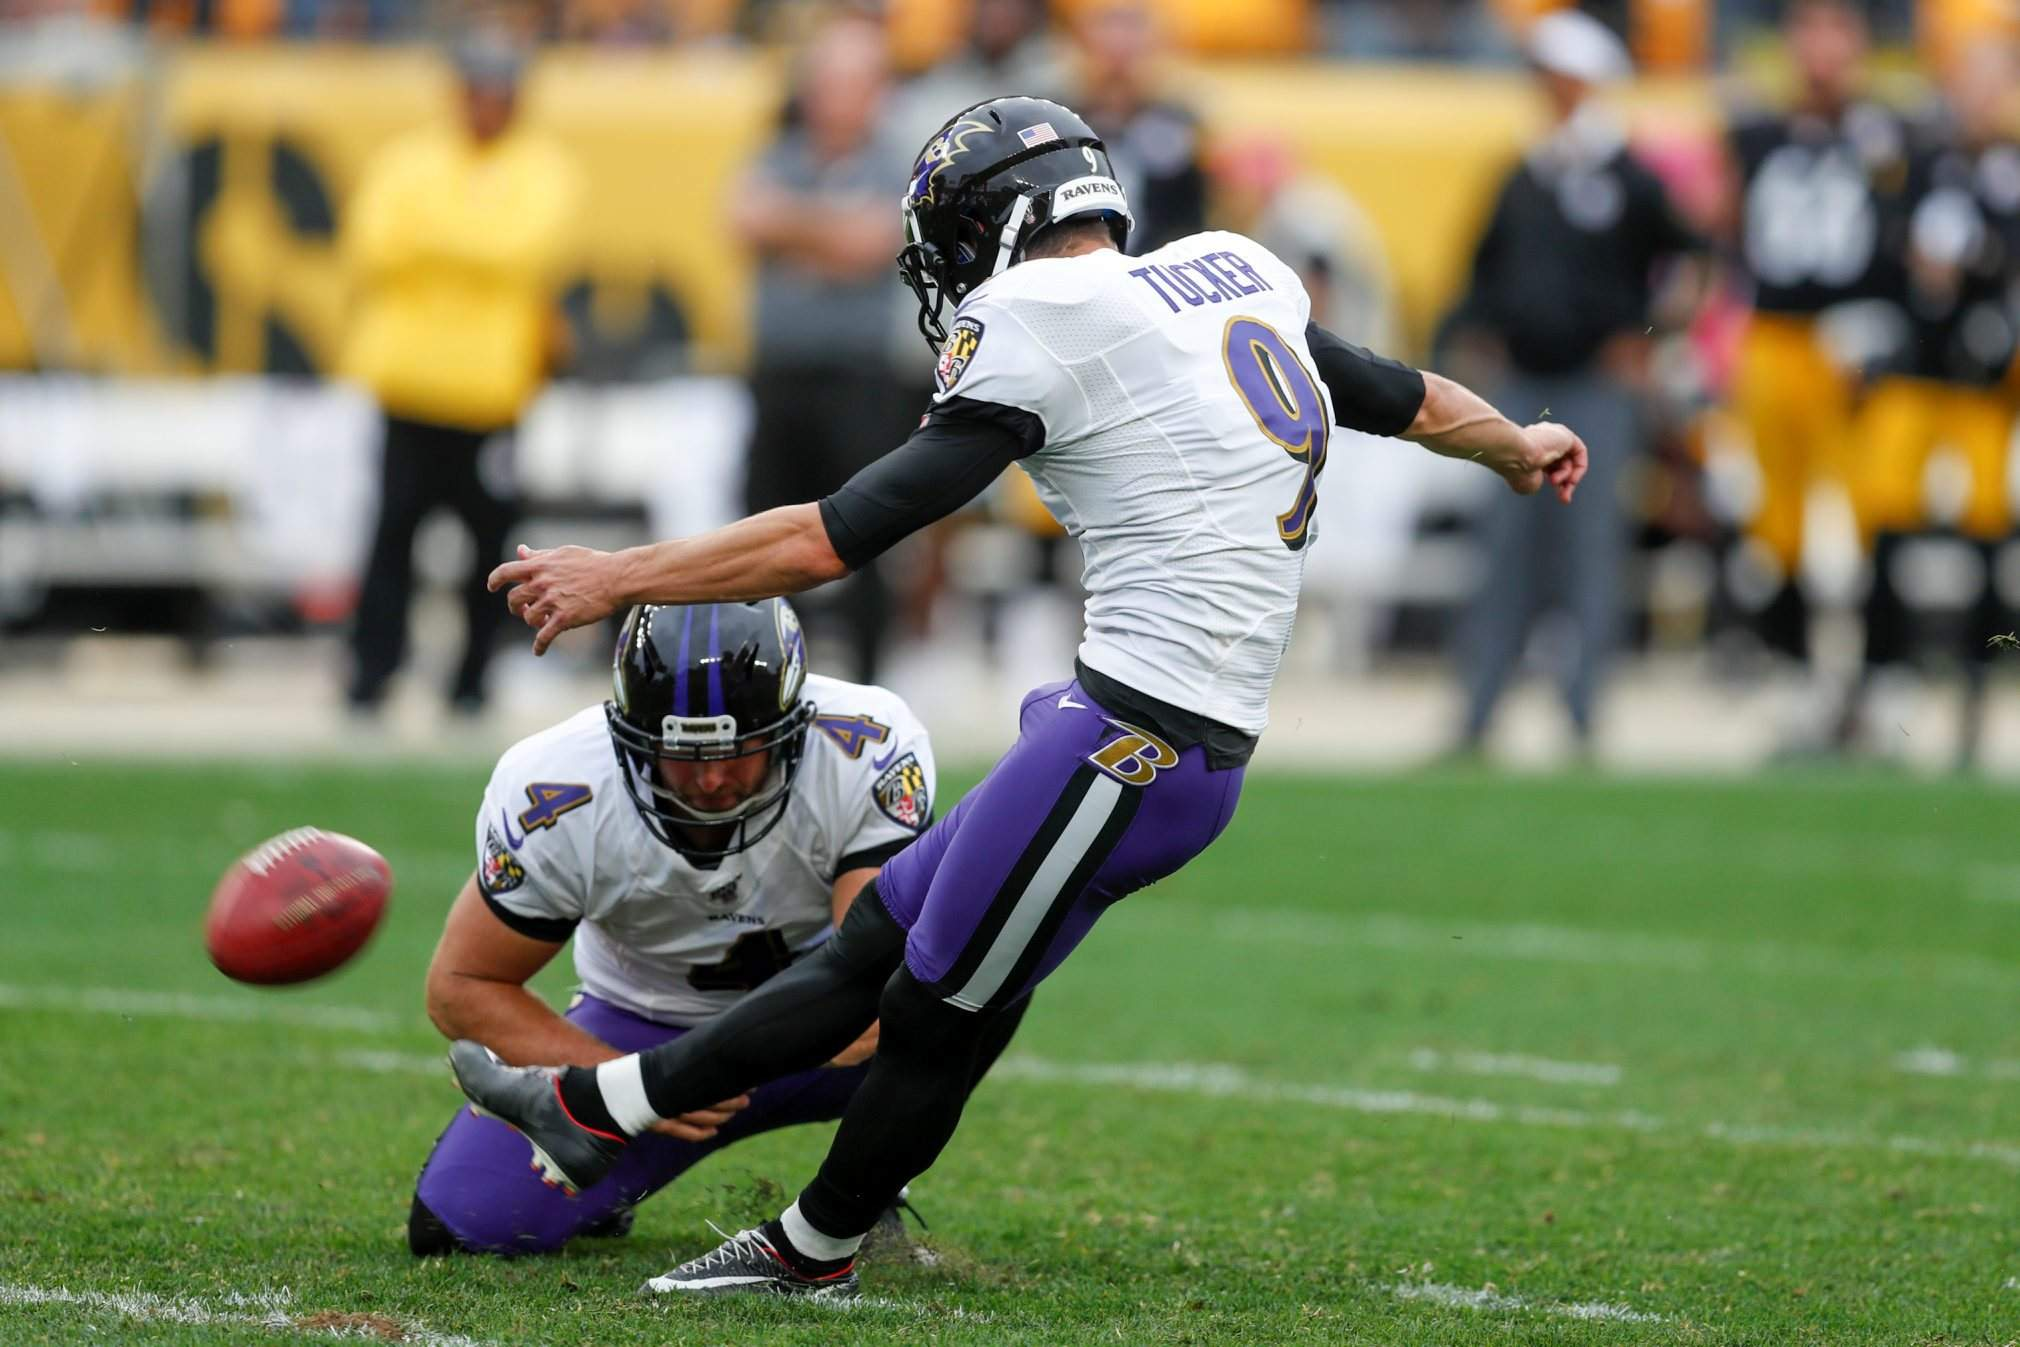 Sforzo di squadra (Baltimore Ravens vs Pittsburgh Steelers 26-23)